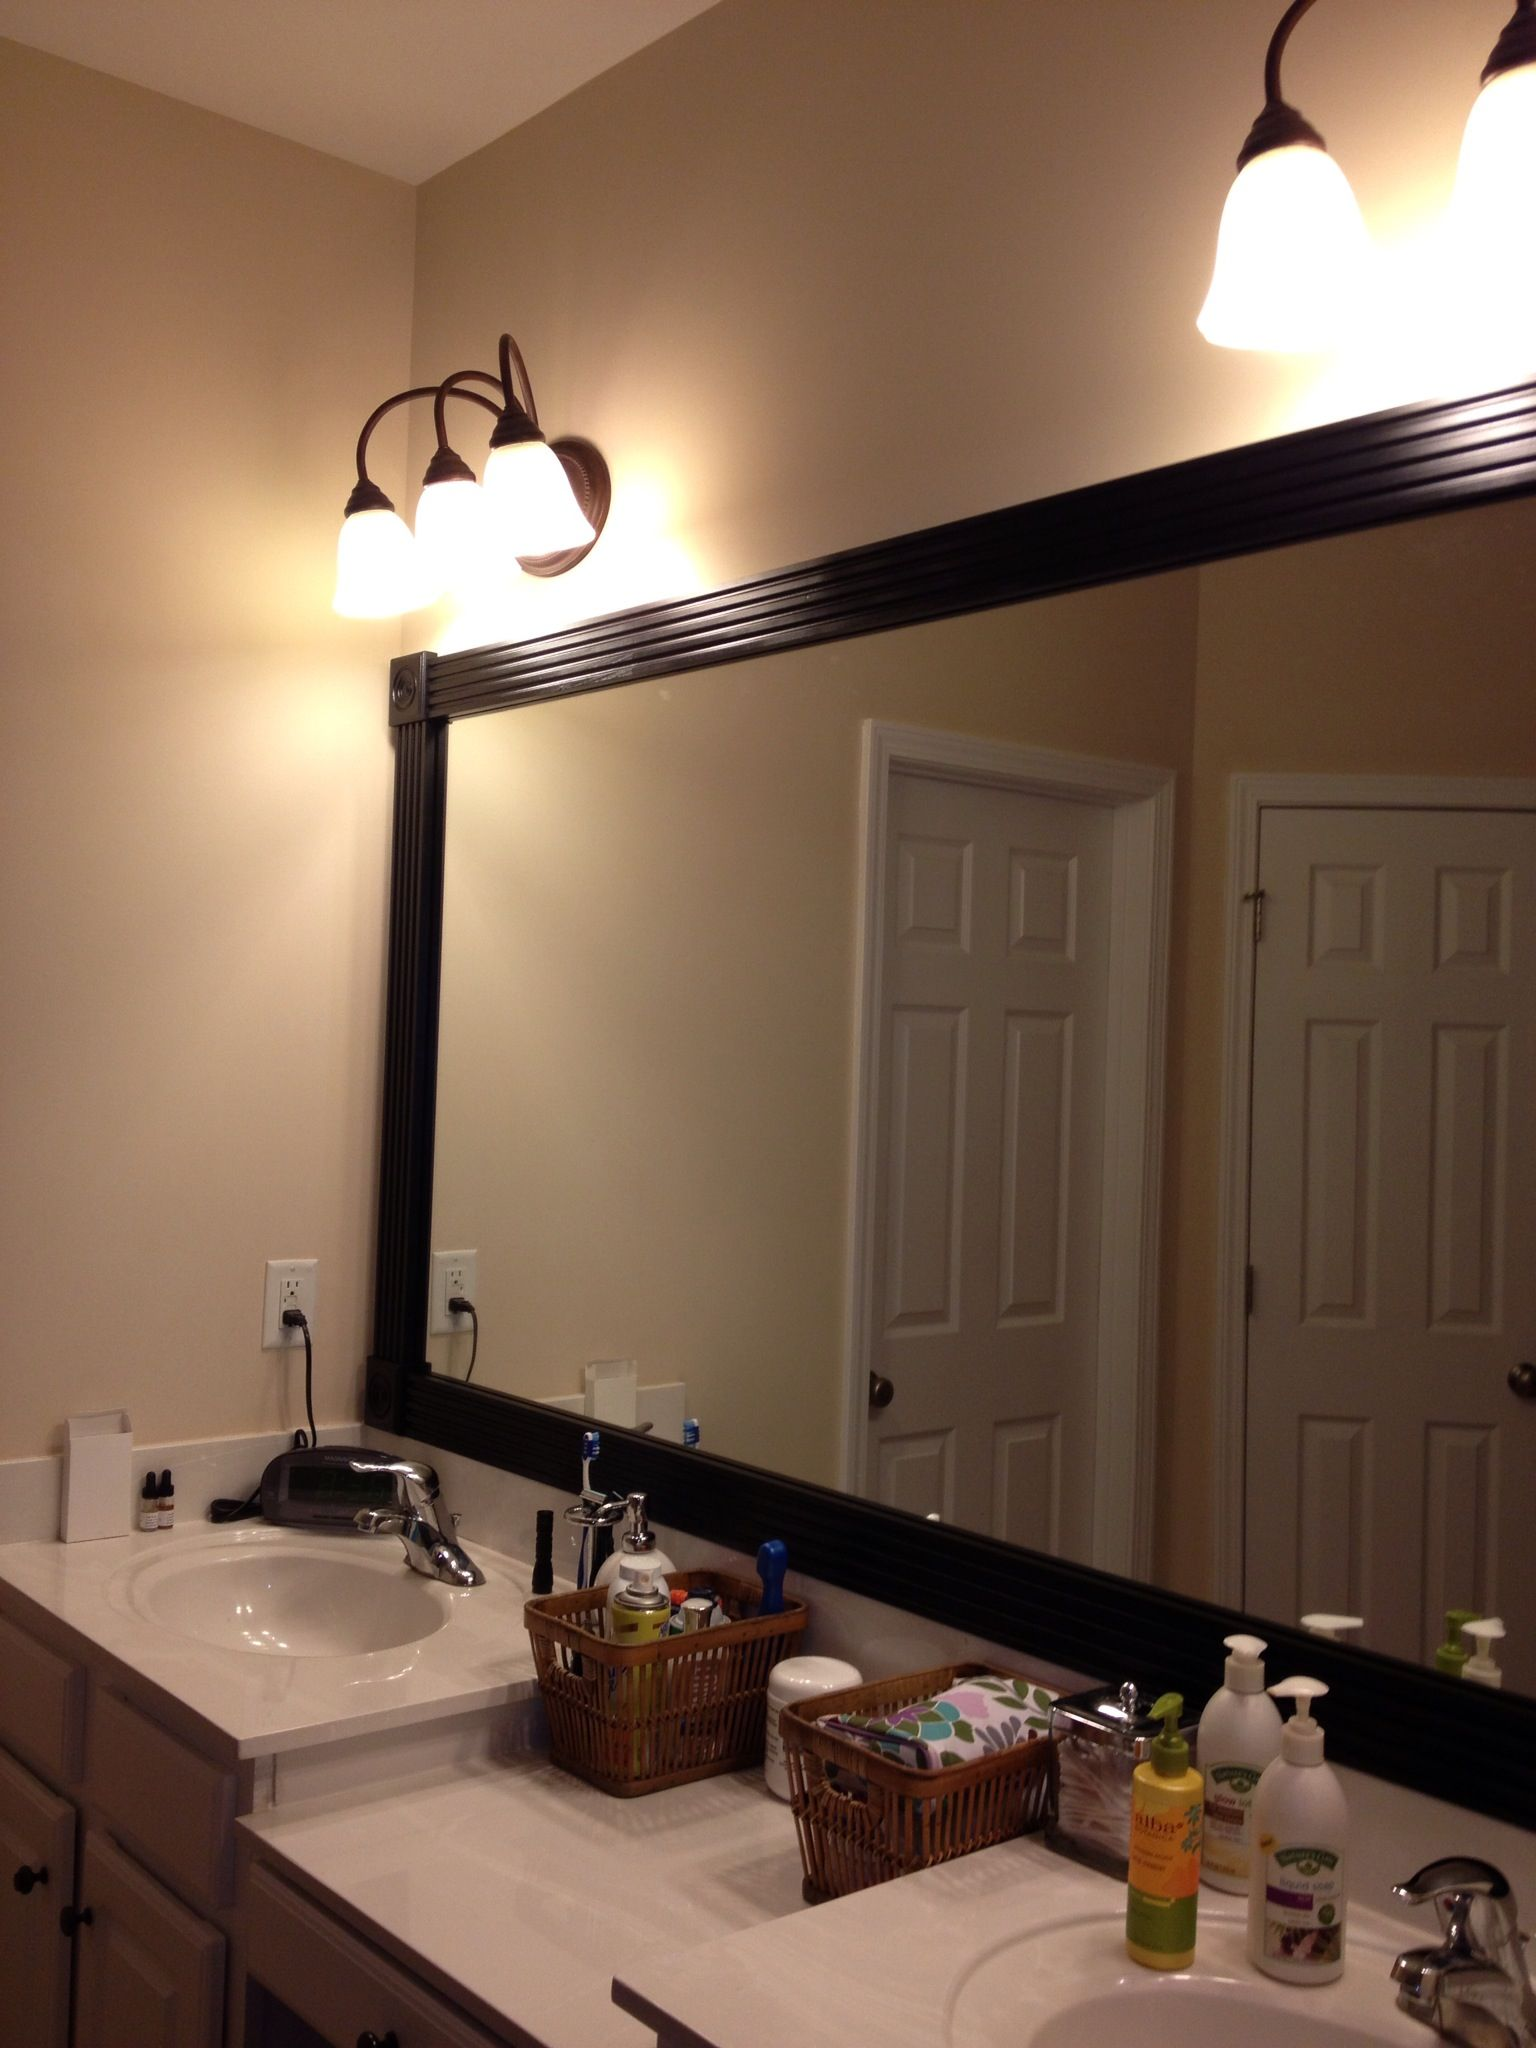 Bathroom mirror framed | Ideas I stole from Pinterest and actually ...